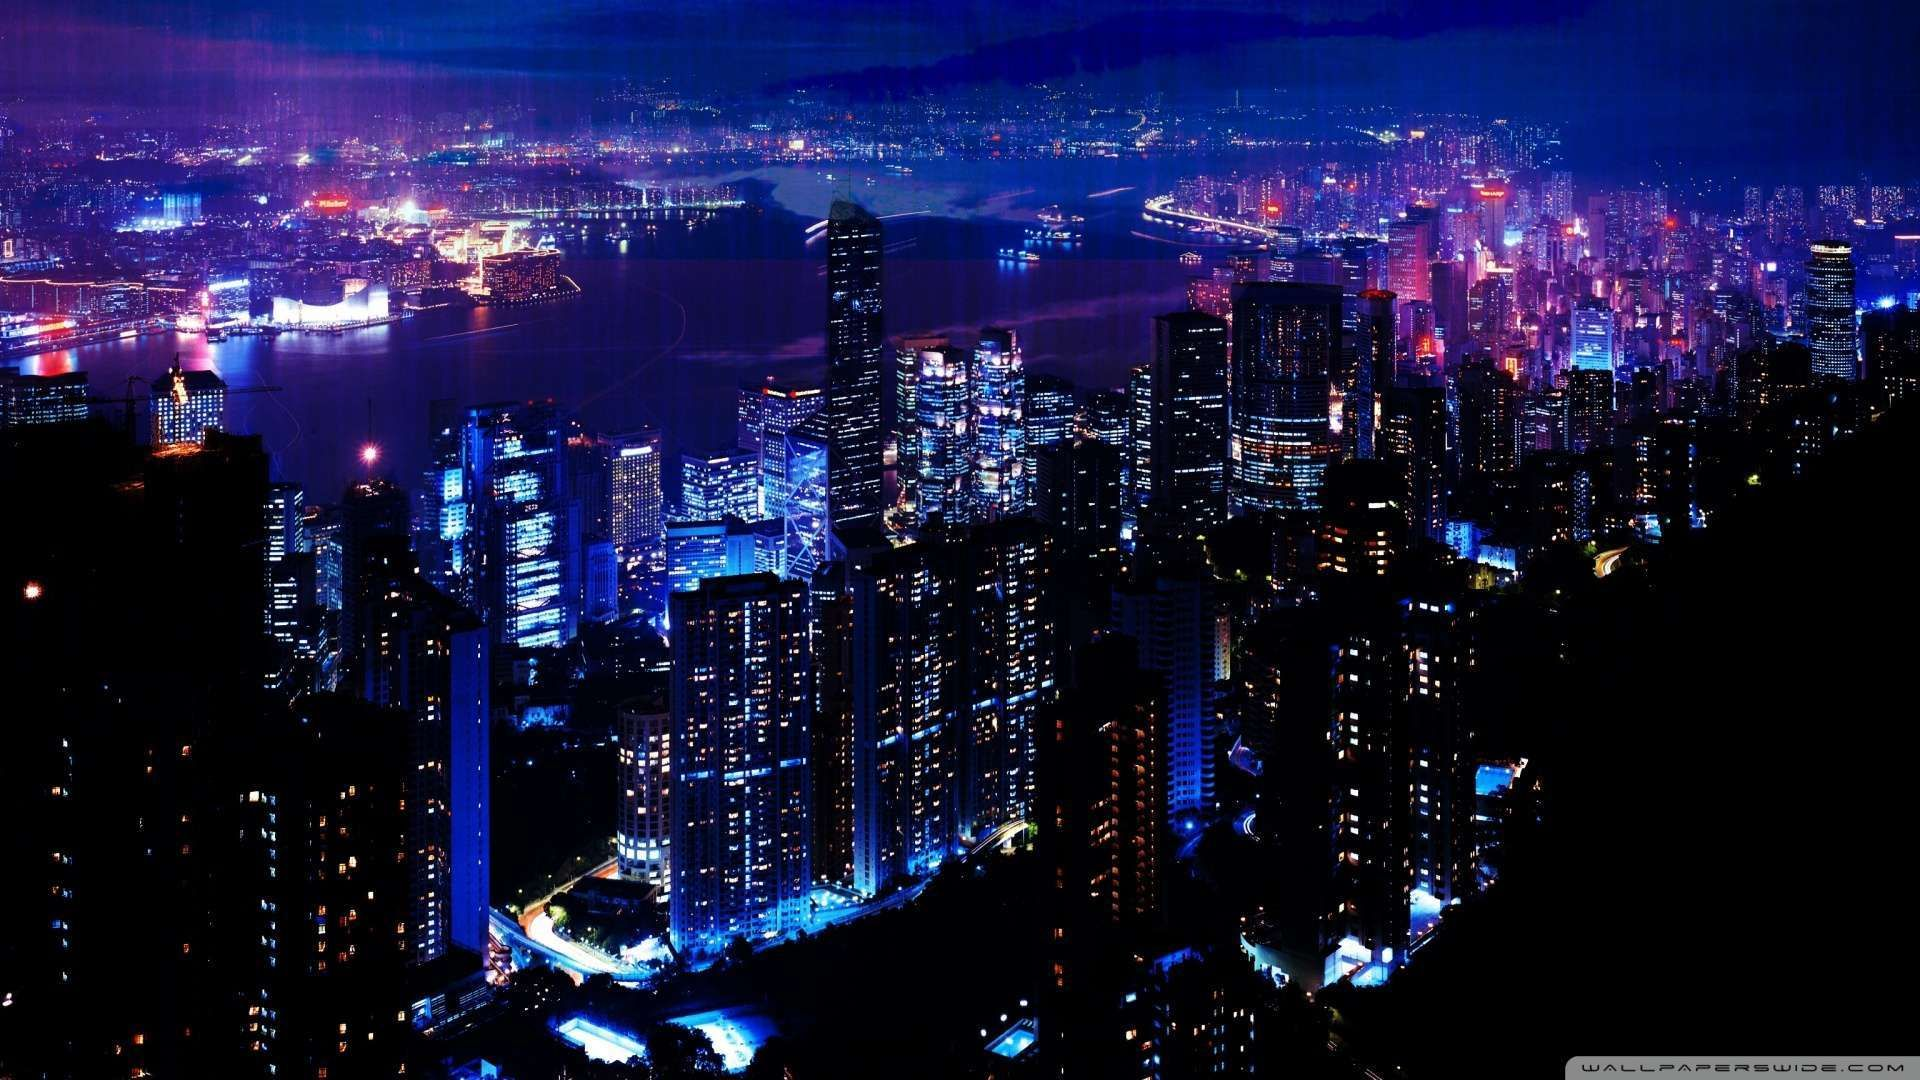 Hd City Wallpapers 1080p City Wallpaper Night Sky Wallpaper